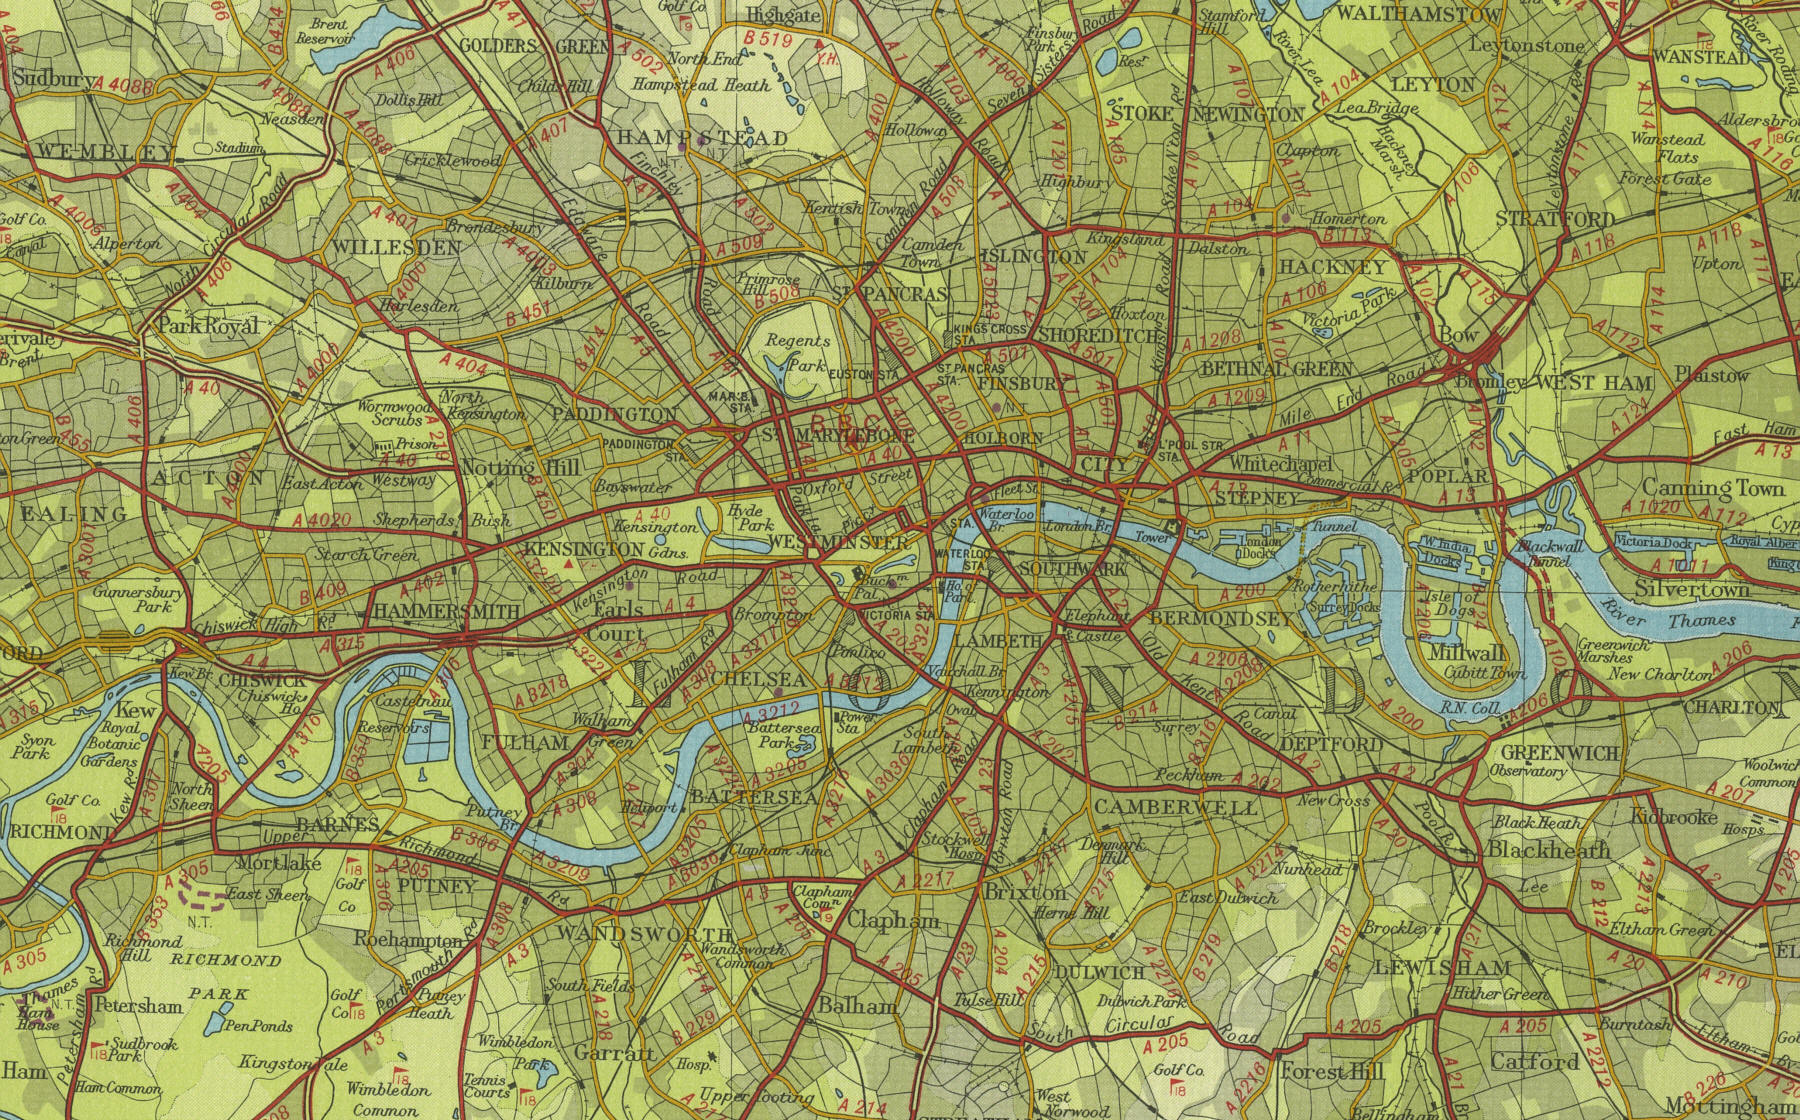 London England City Map.London England Street Map London England City Map London England